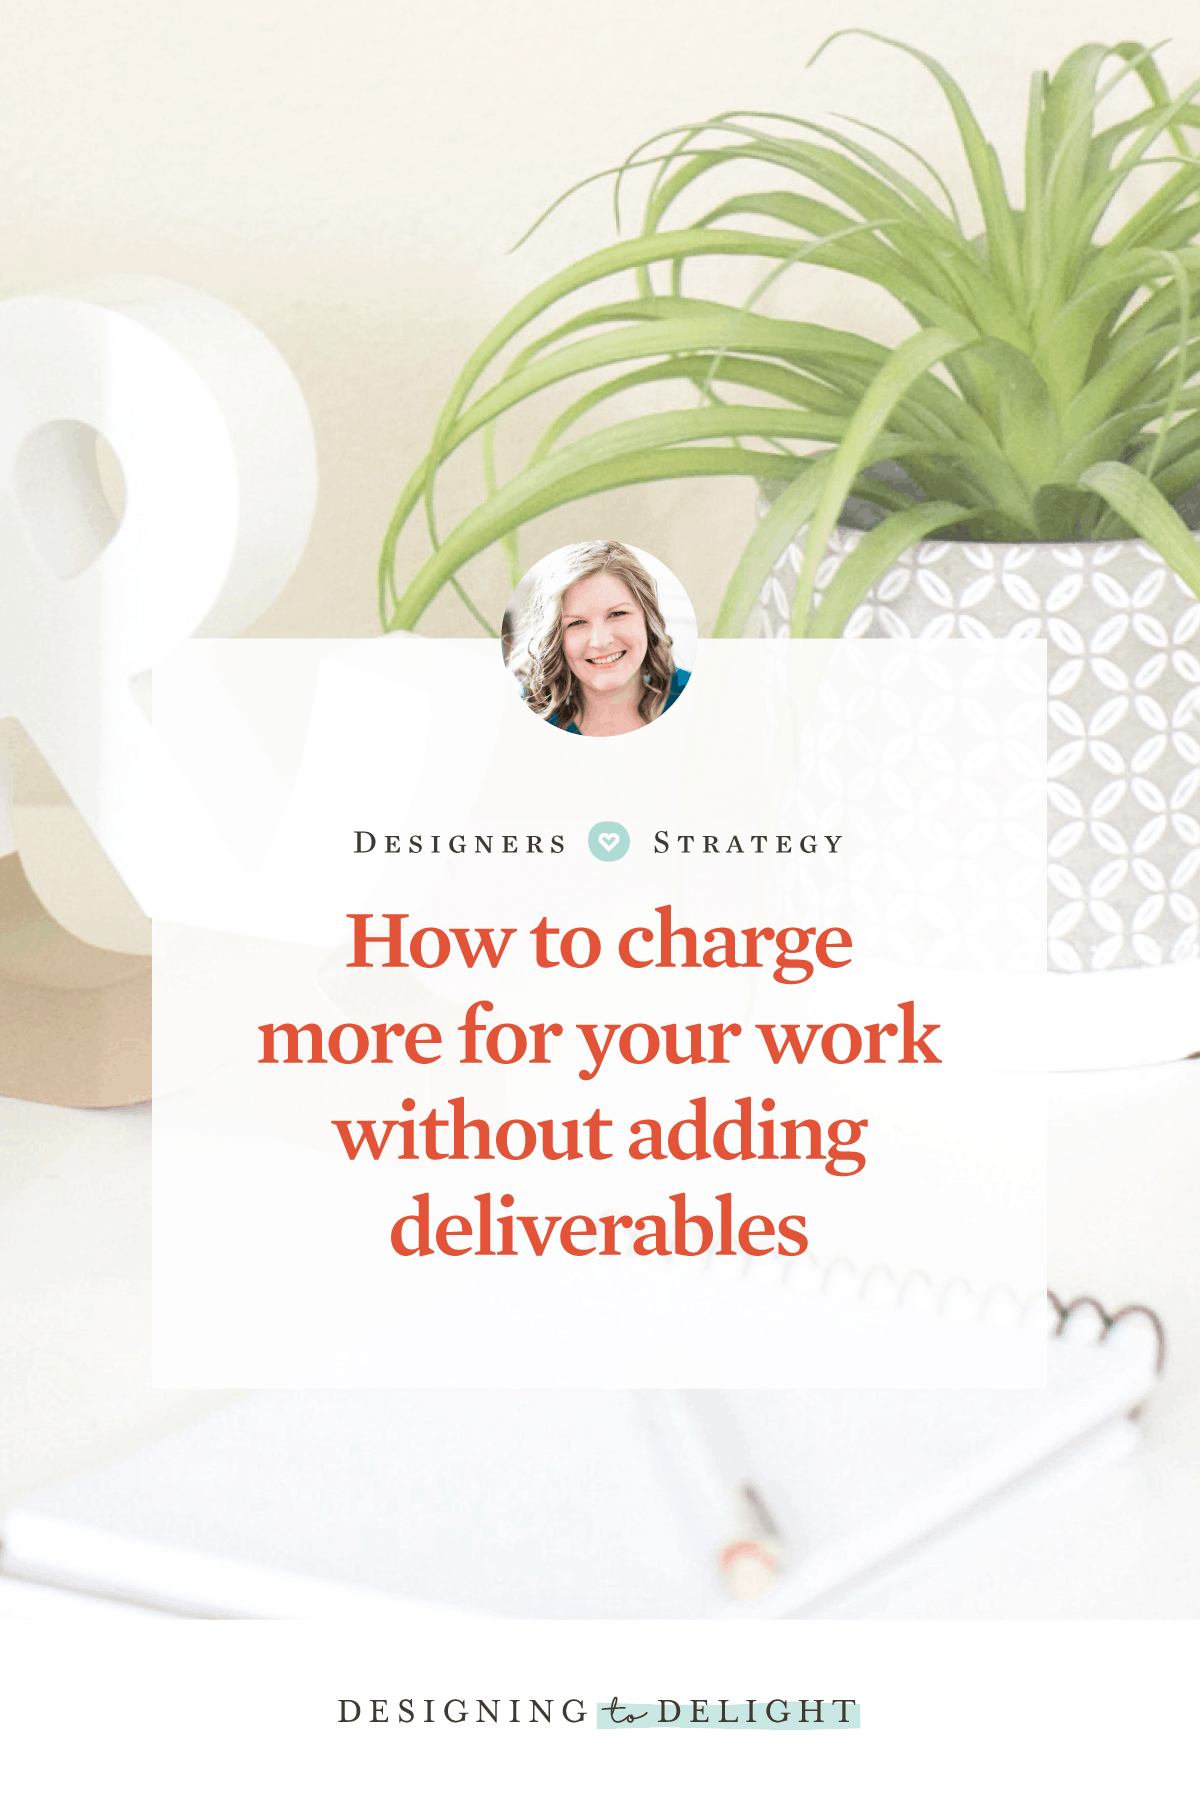 Strategic designer friends - when you demonstrate real value to potential clients, you can charge more for your creative work. This means doing more than simply adding deliverables to your package.